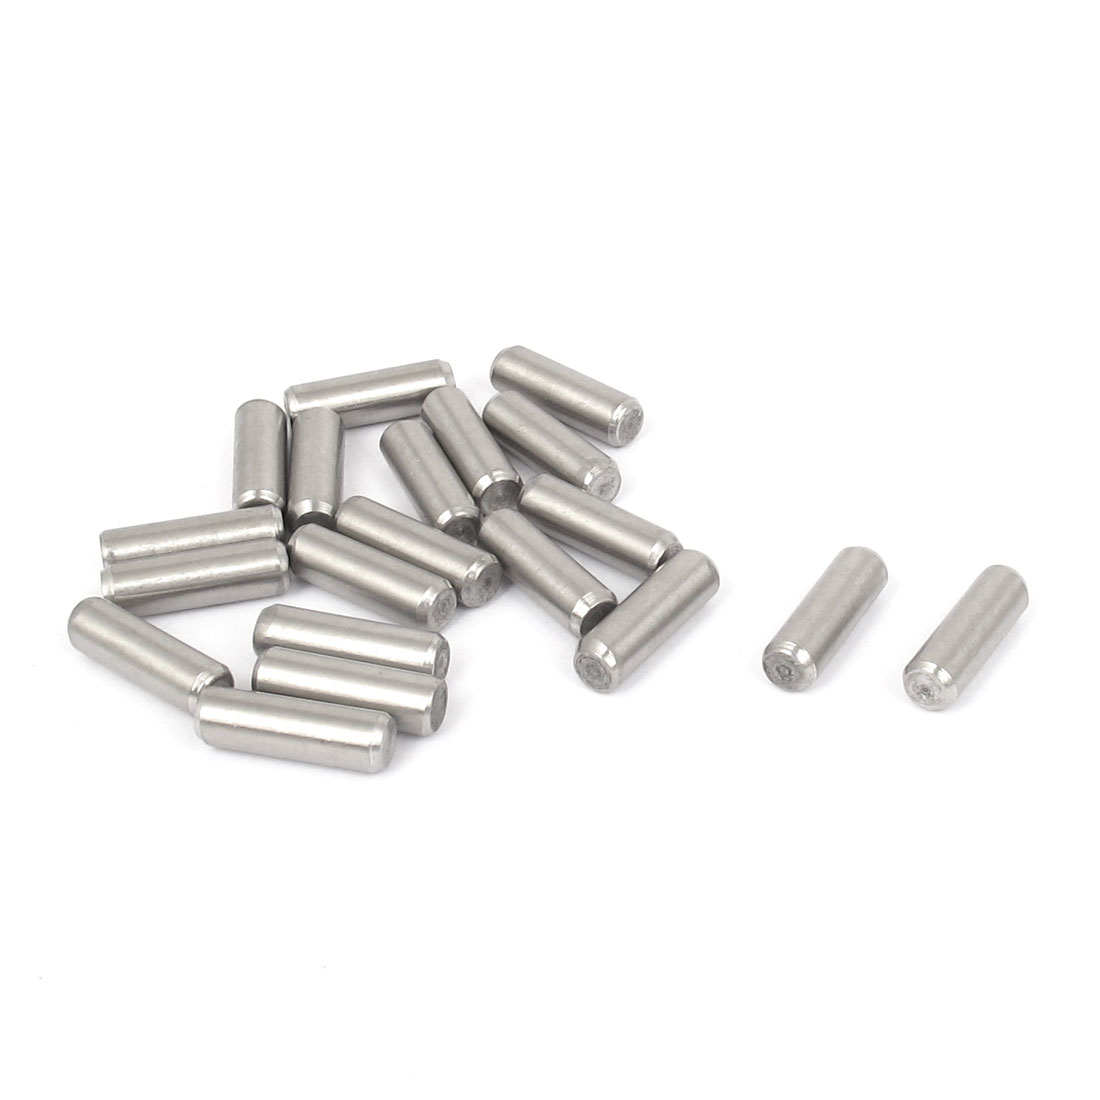 5mmx16mm 304 Stainless Steel Parallel Dowel Pins Fastener Elements 20pcs